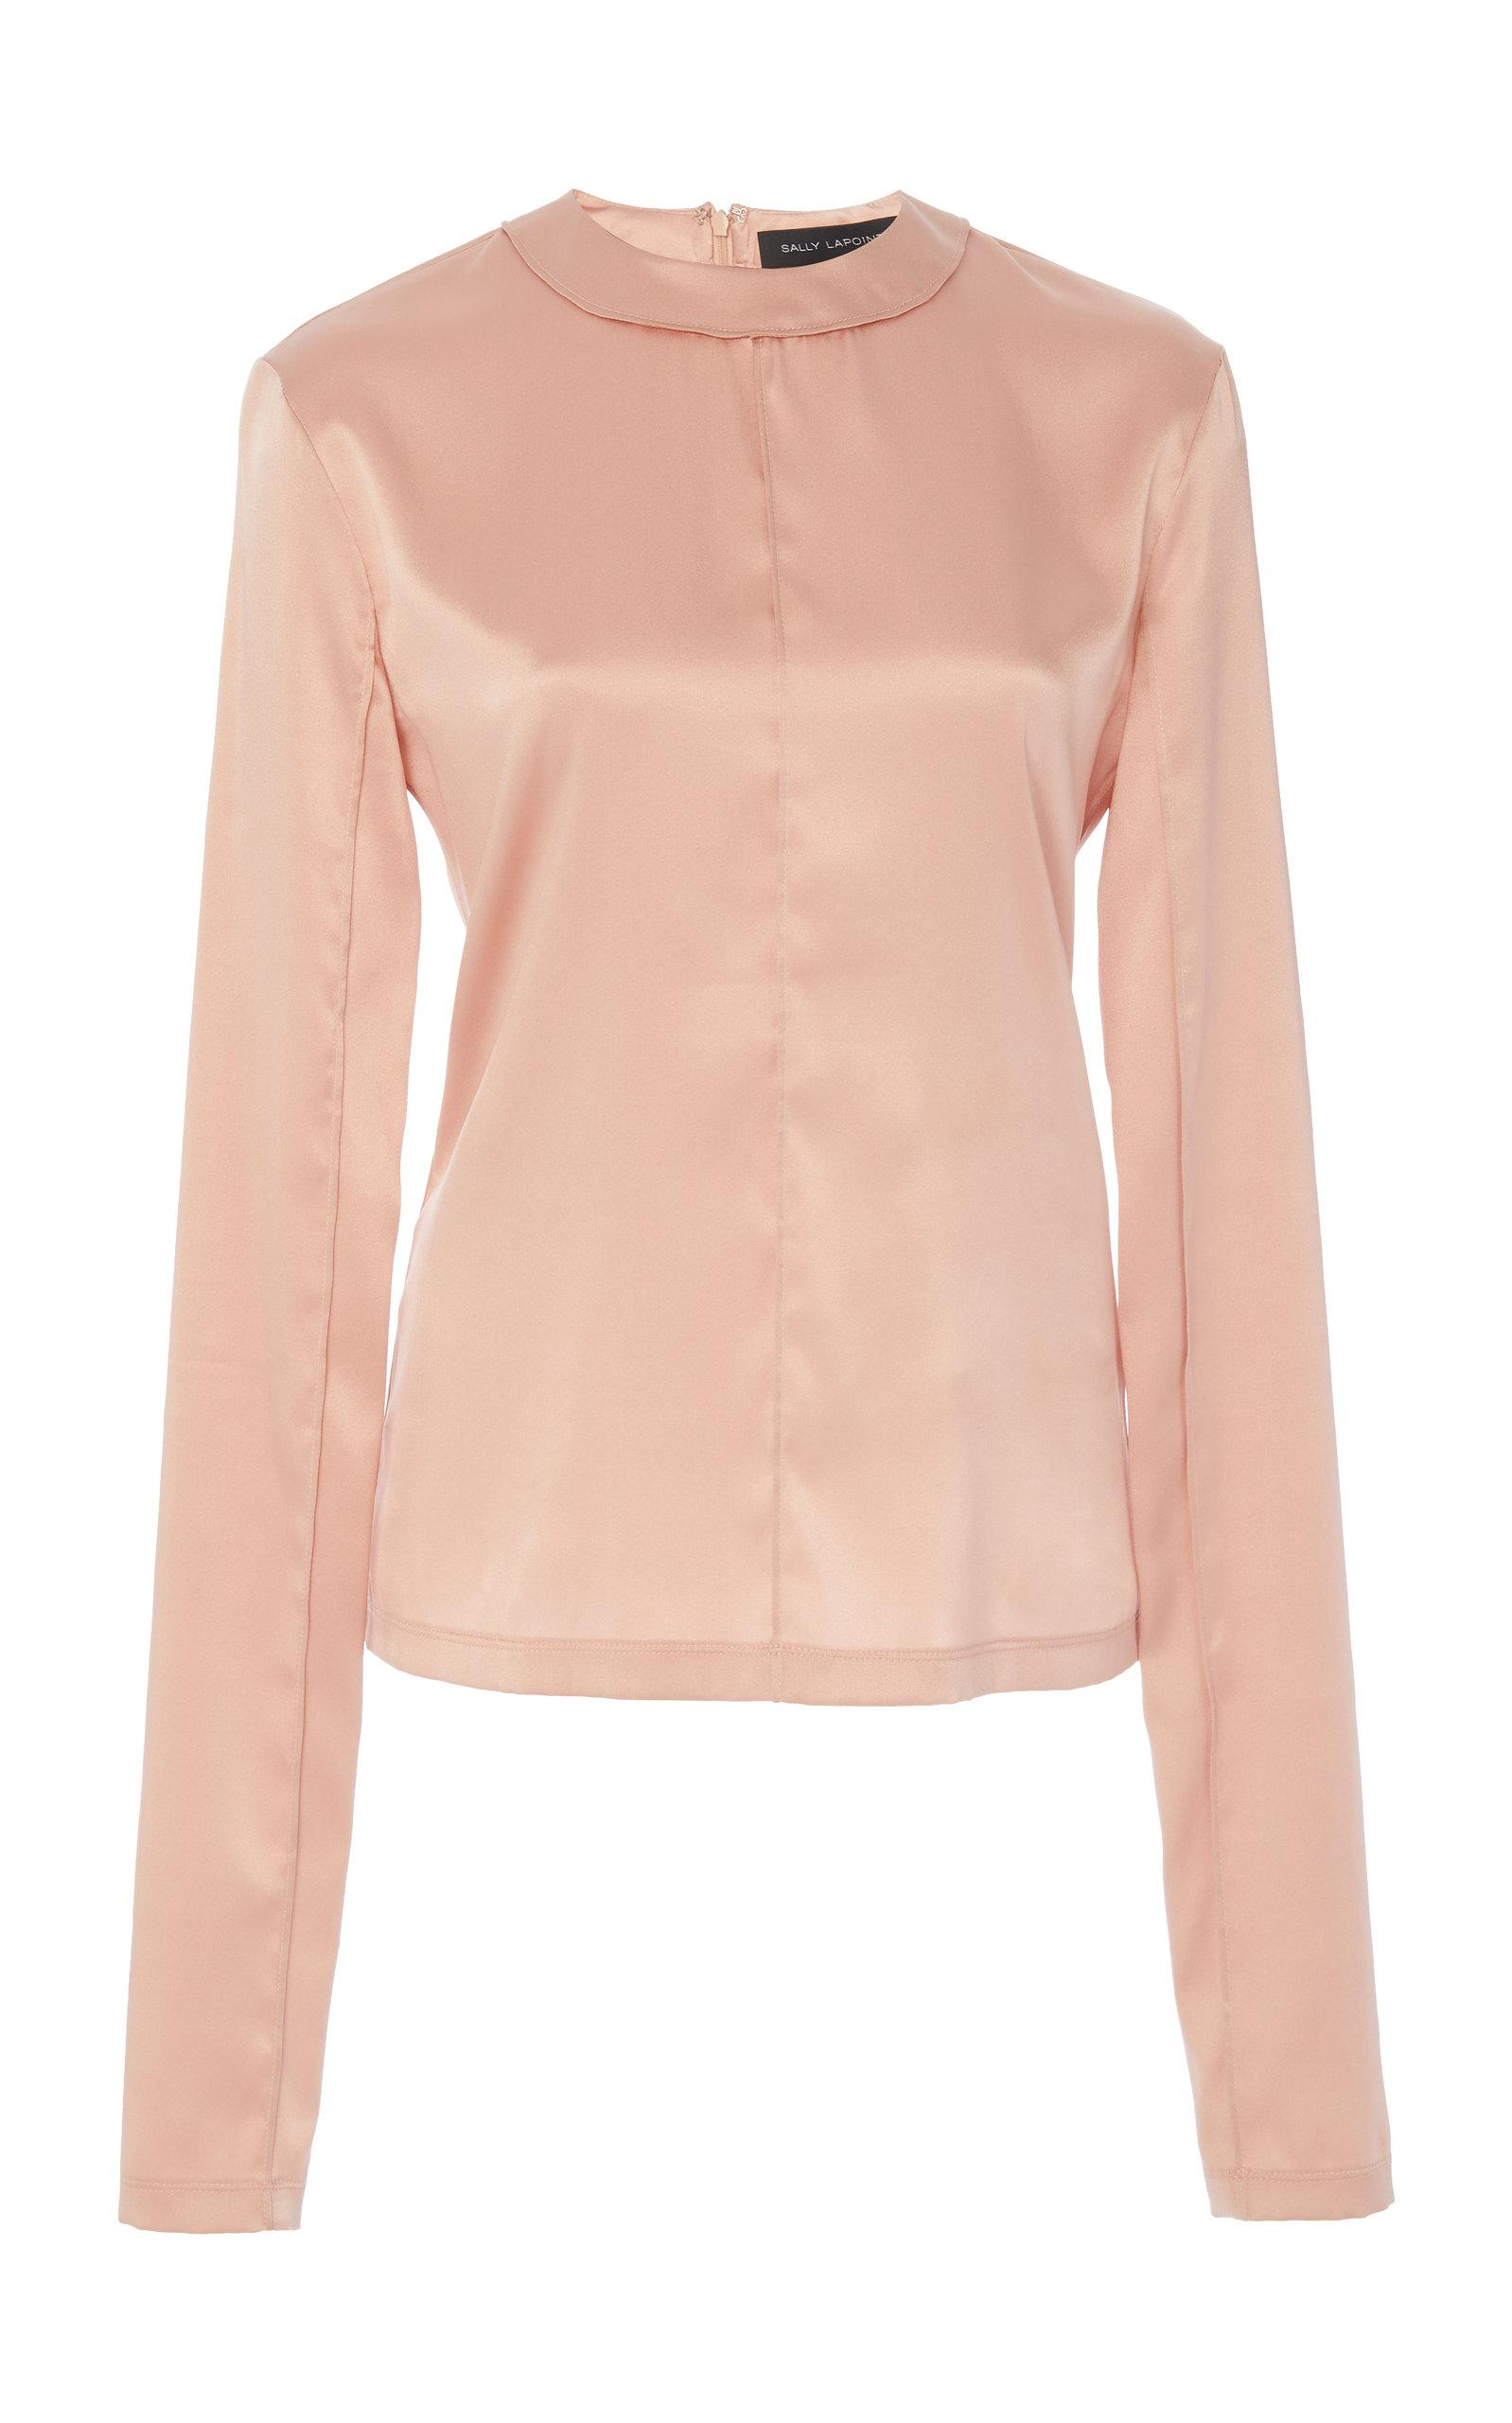 Metallic Stretch Silk Ski Top Sally Lapointe Sale Outlet Locations Free Shipping For Cheap FnzZXozyA0